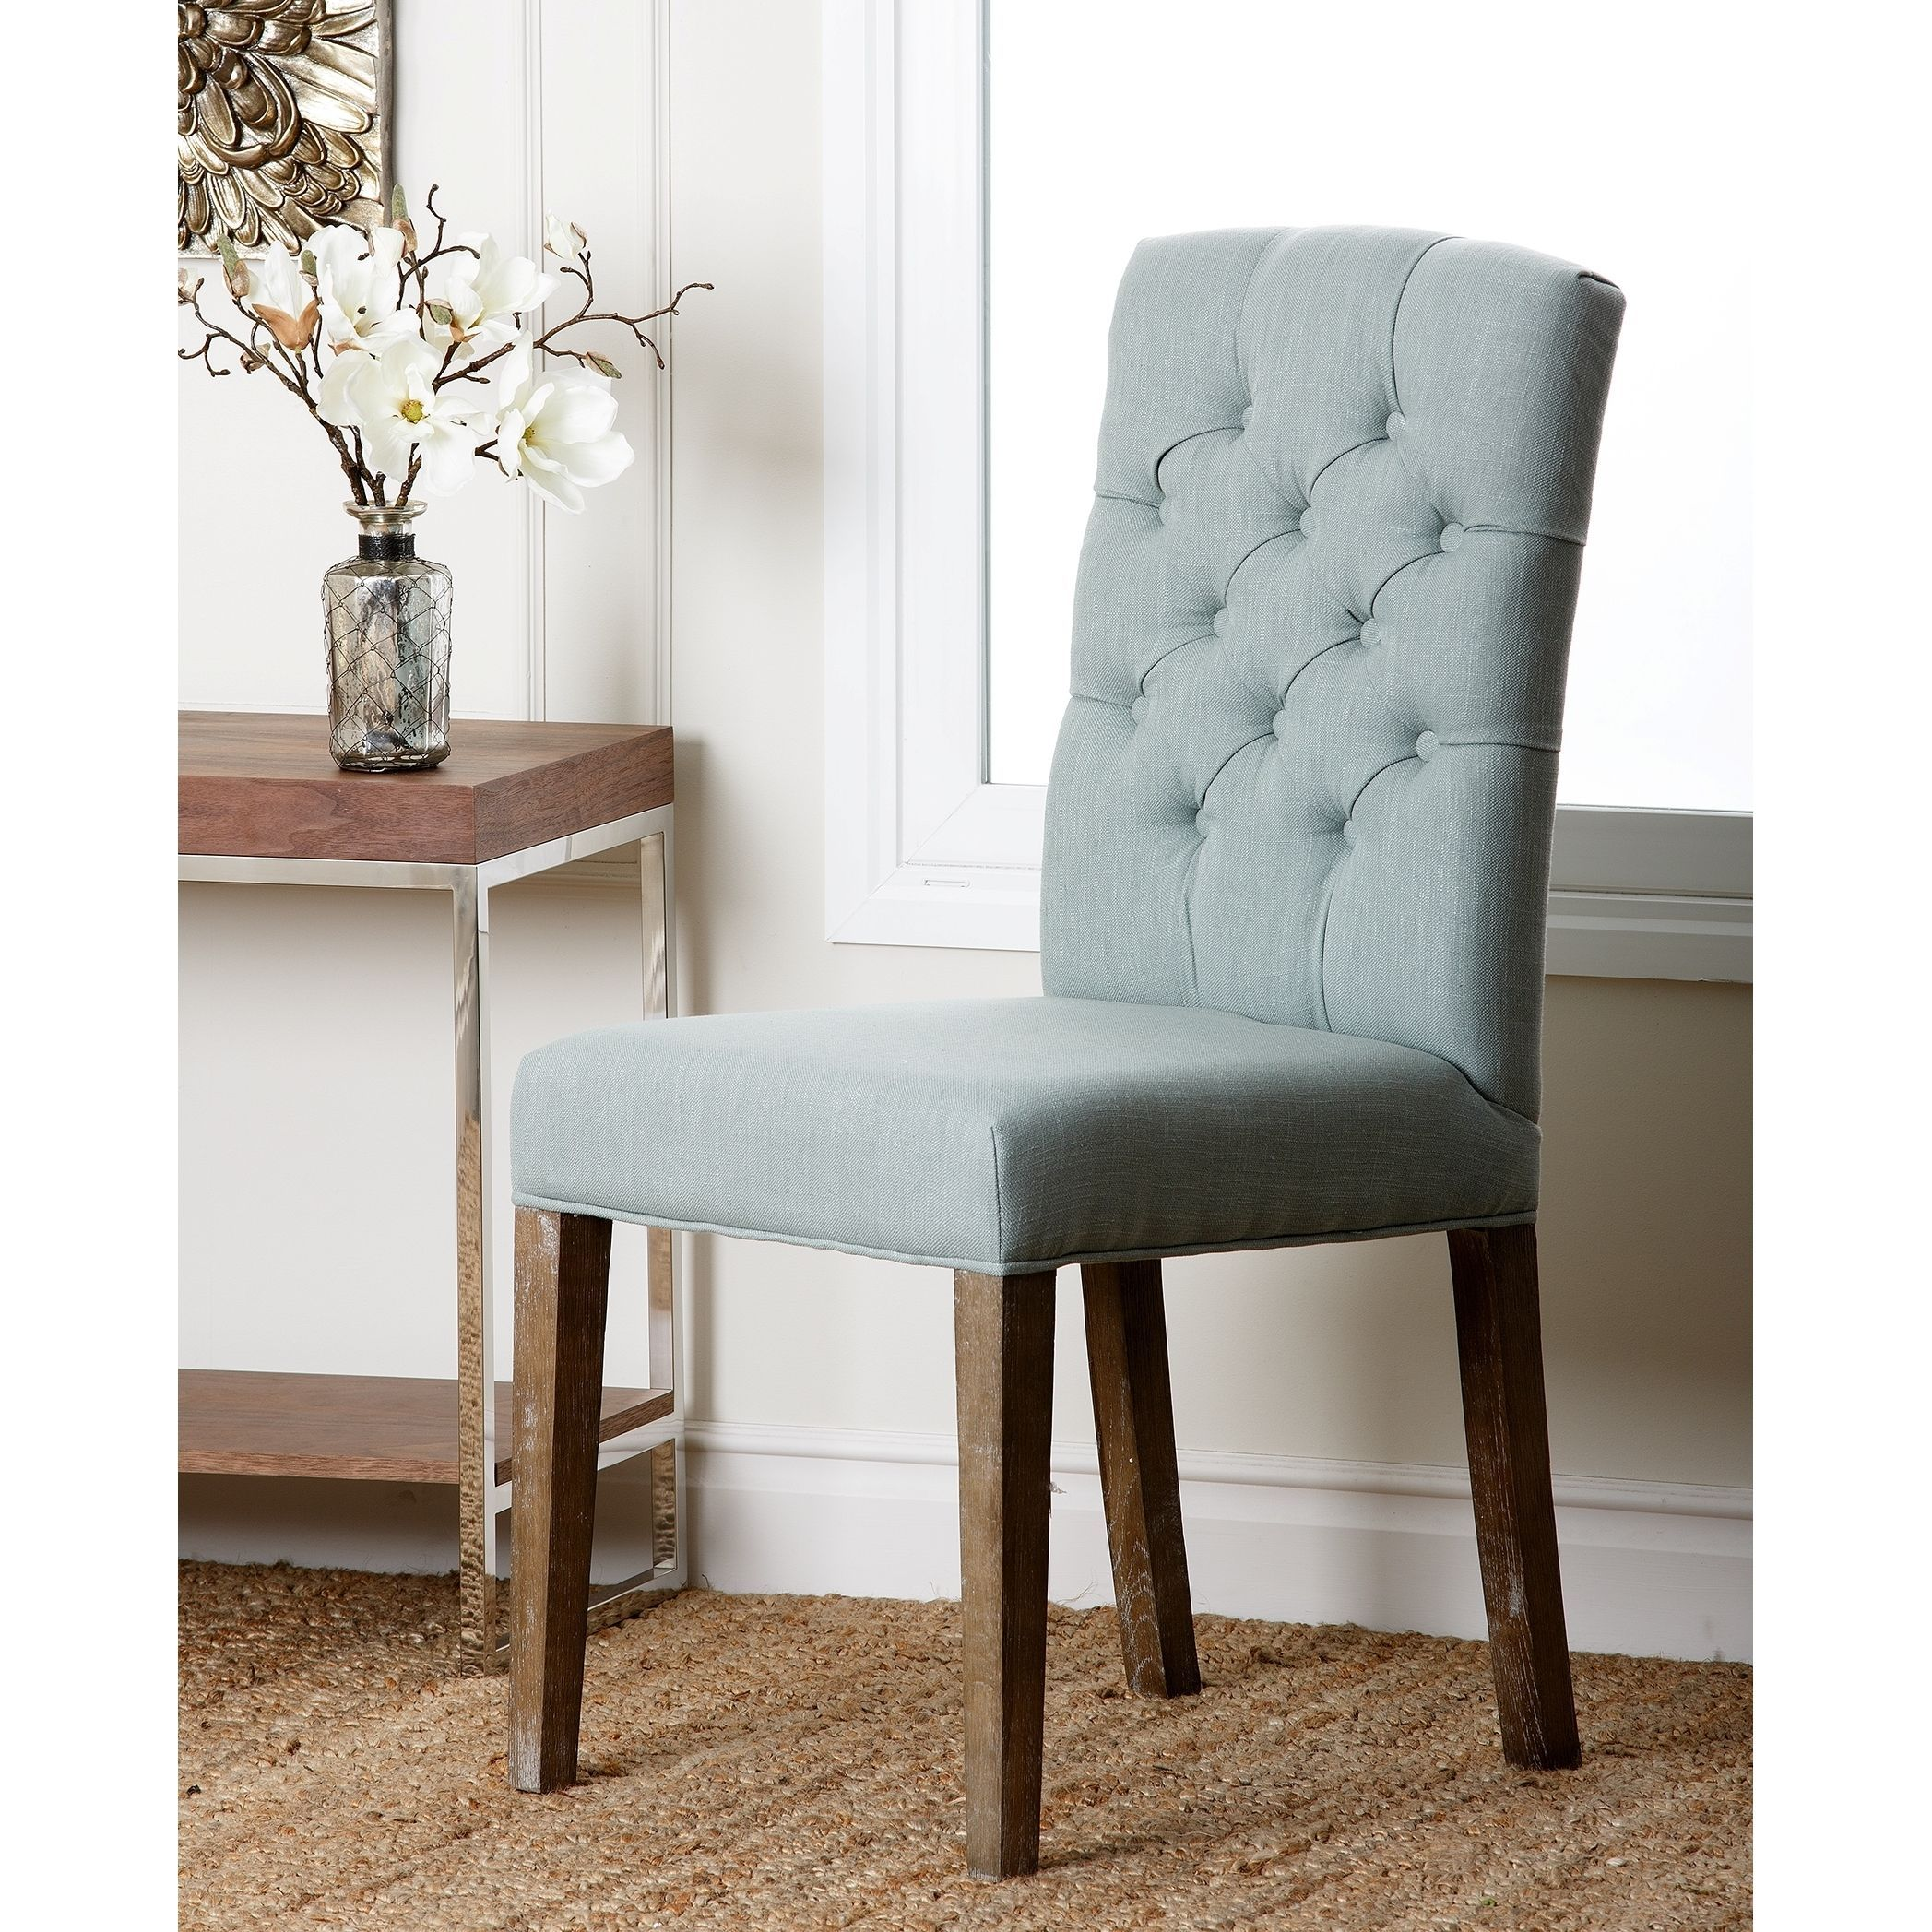 Linen Tufted Dining Chairs Abbyson Living Colin Seafoam Blue Linen Tufted Dining